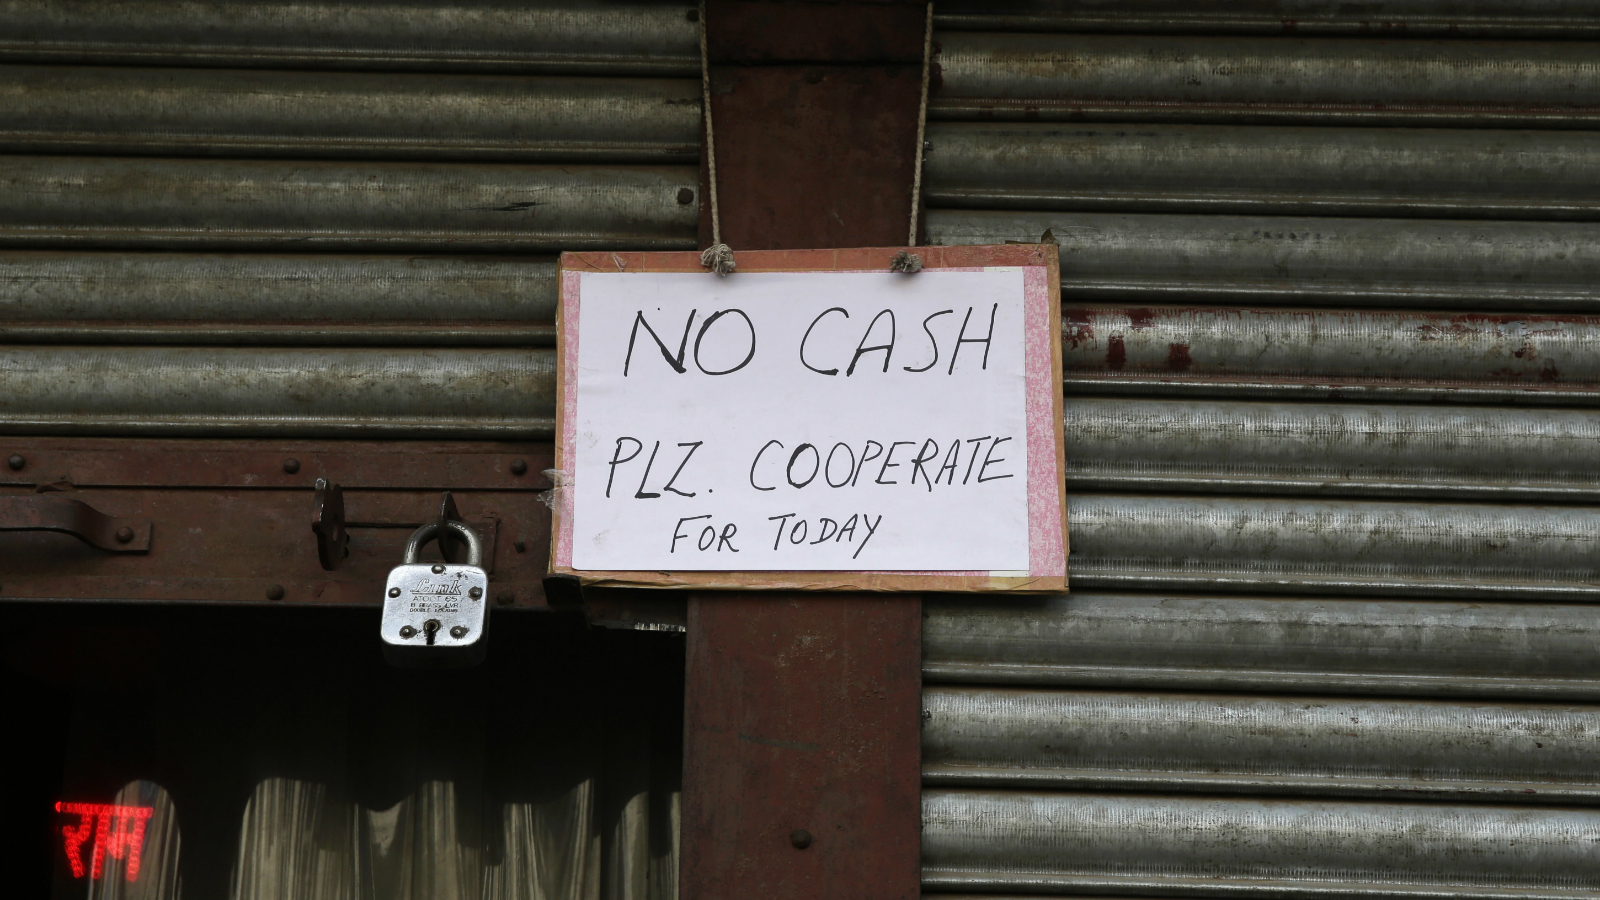 A notice is hung outside a bank as it ran out of cash in Delhi, India, Thursday, Dec. 1, 2016. Indian Prime Minister Narendra Modi, in his Nov. 8 televised address, announced demonetization of India's 500 and 1,000-rupee notes, which made up 86 percent of the country's currency. People have been forced to stand in long queues to change banned notes and also to take out new currency from their accounts after severe limitations were imposed on withdrawal from banks and ATMs.